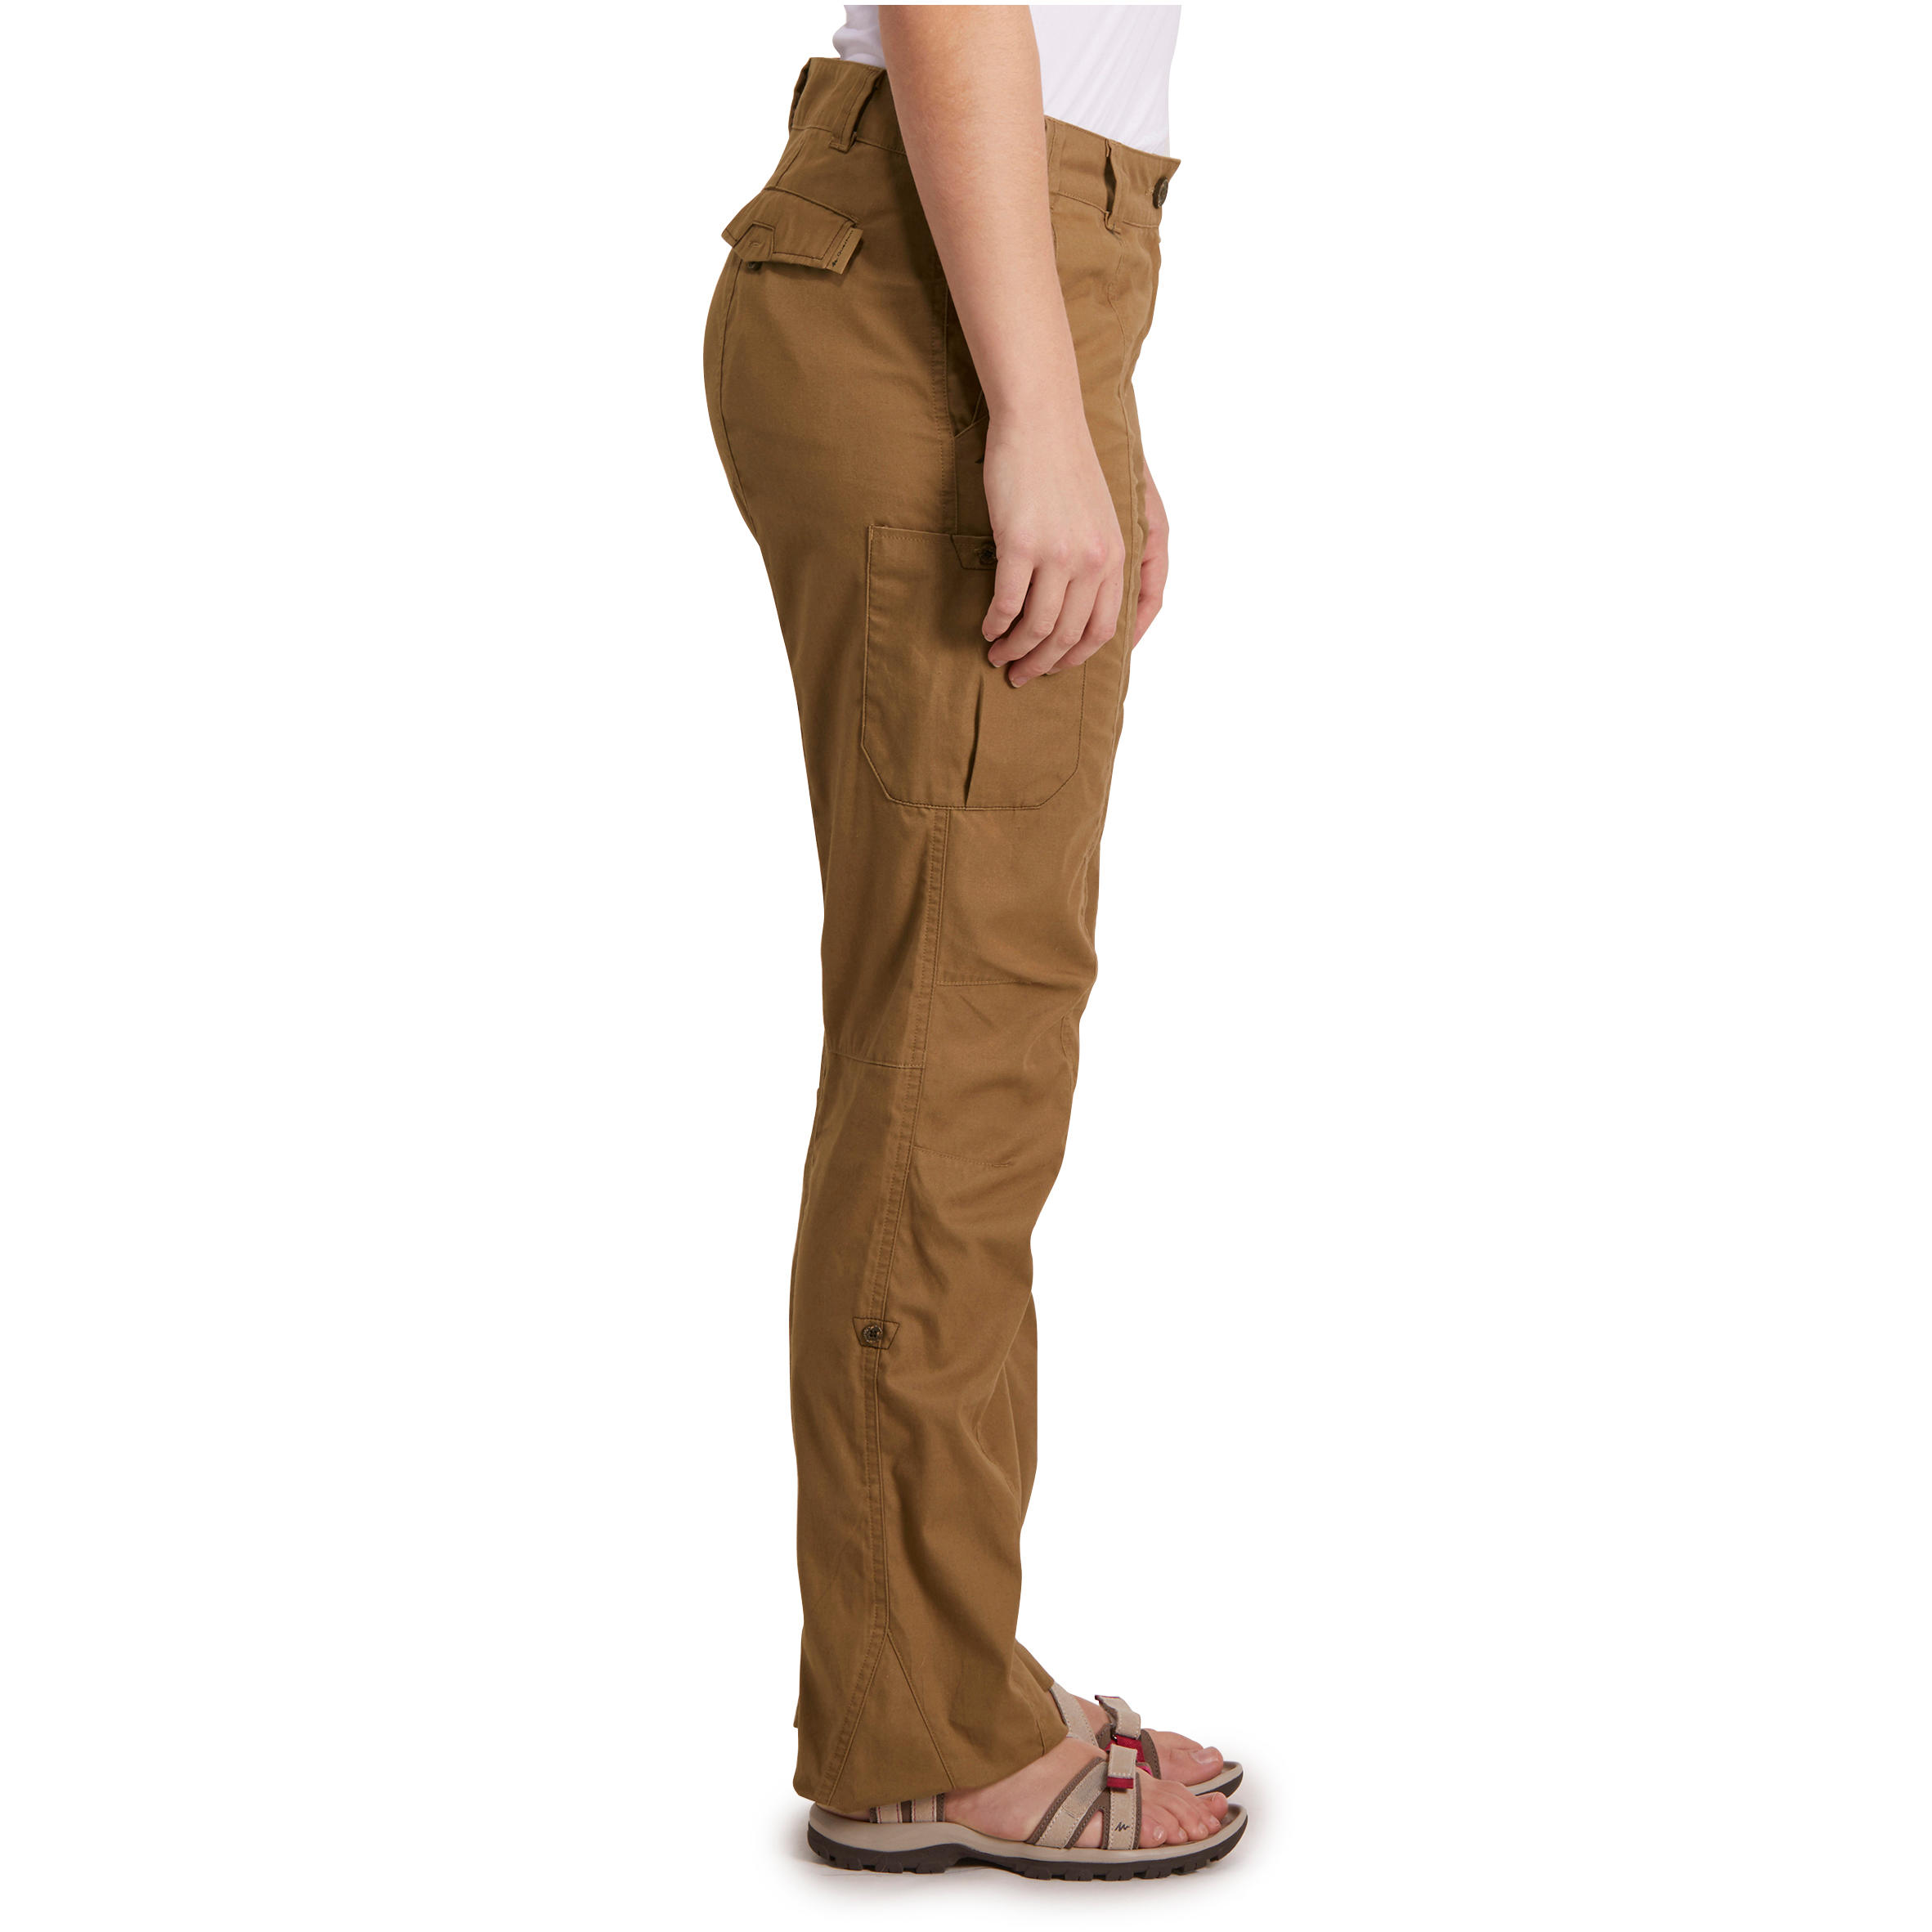 Travel 100 Women's Trousers - Brown